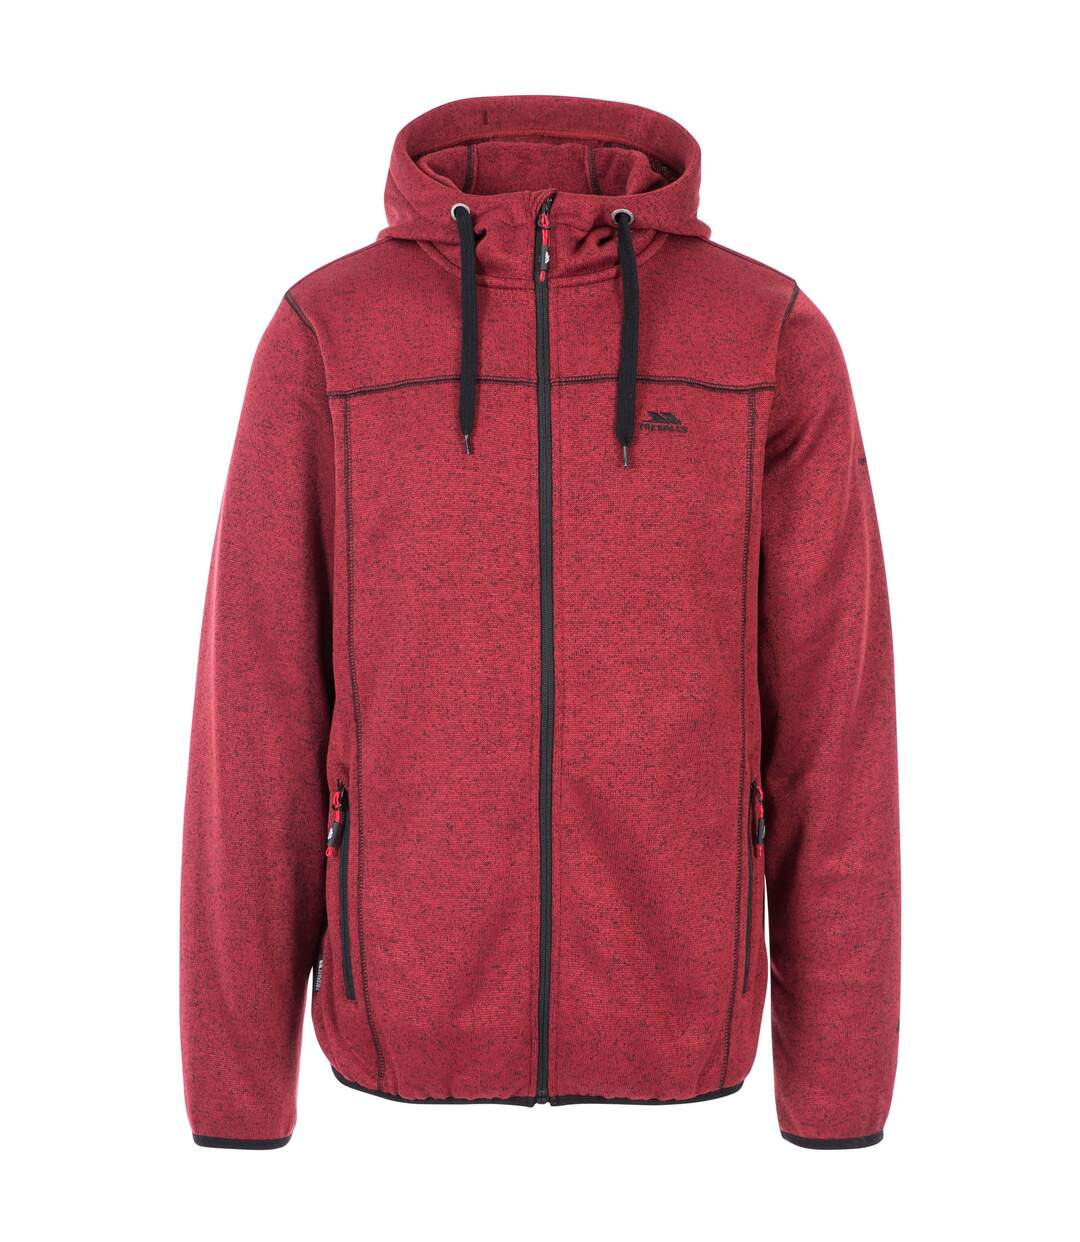 Trespass Mens Odeno Fleece Jacket (Merlot Marl) - UTTP4374